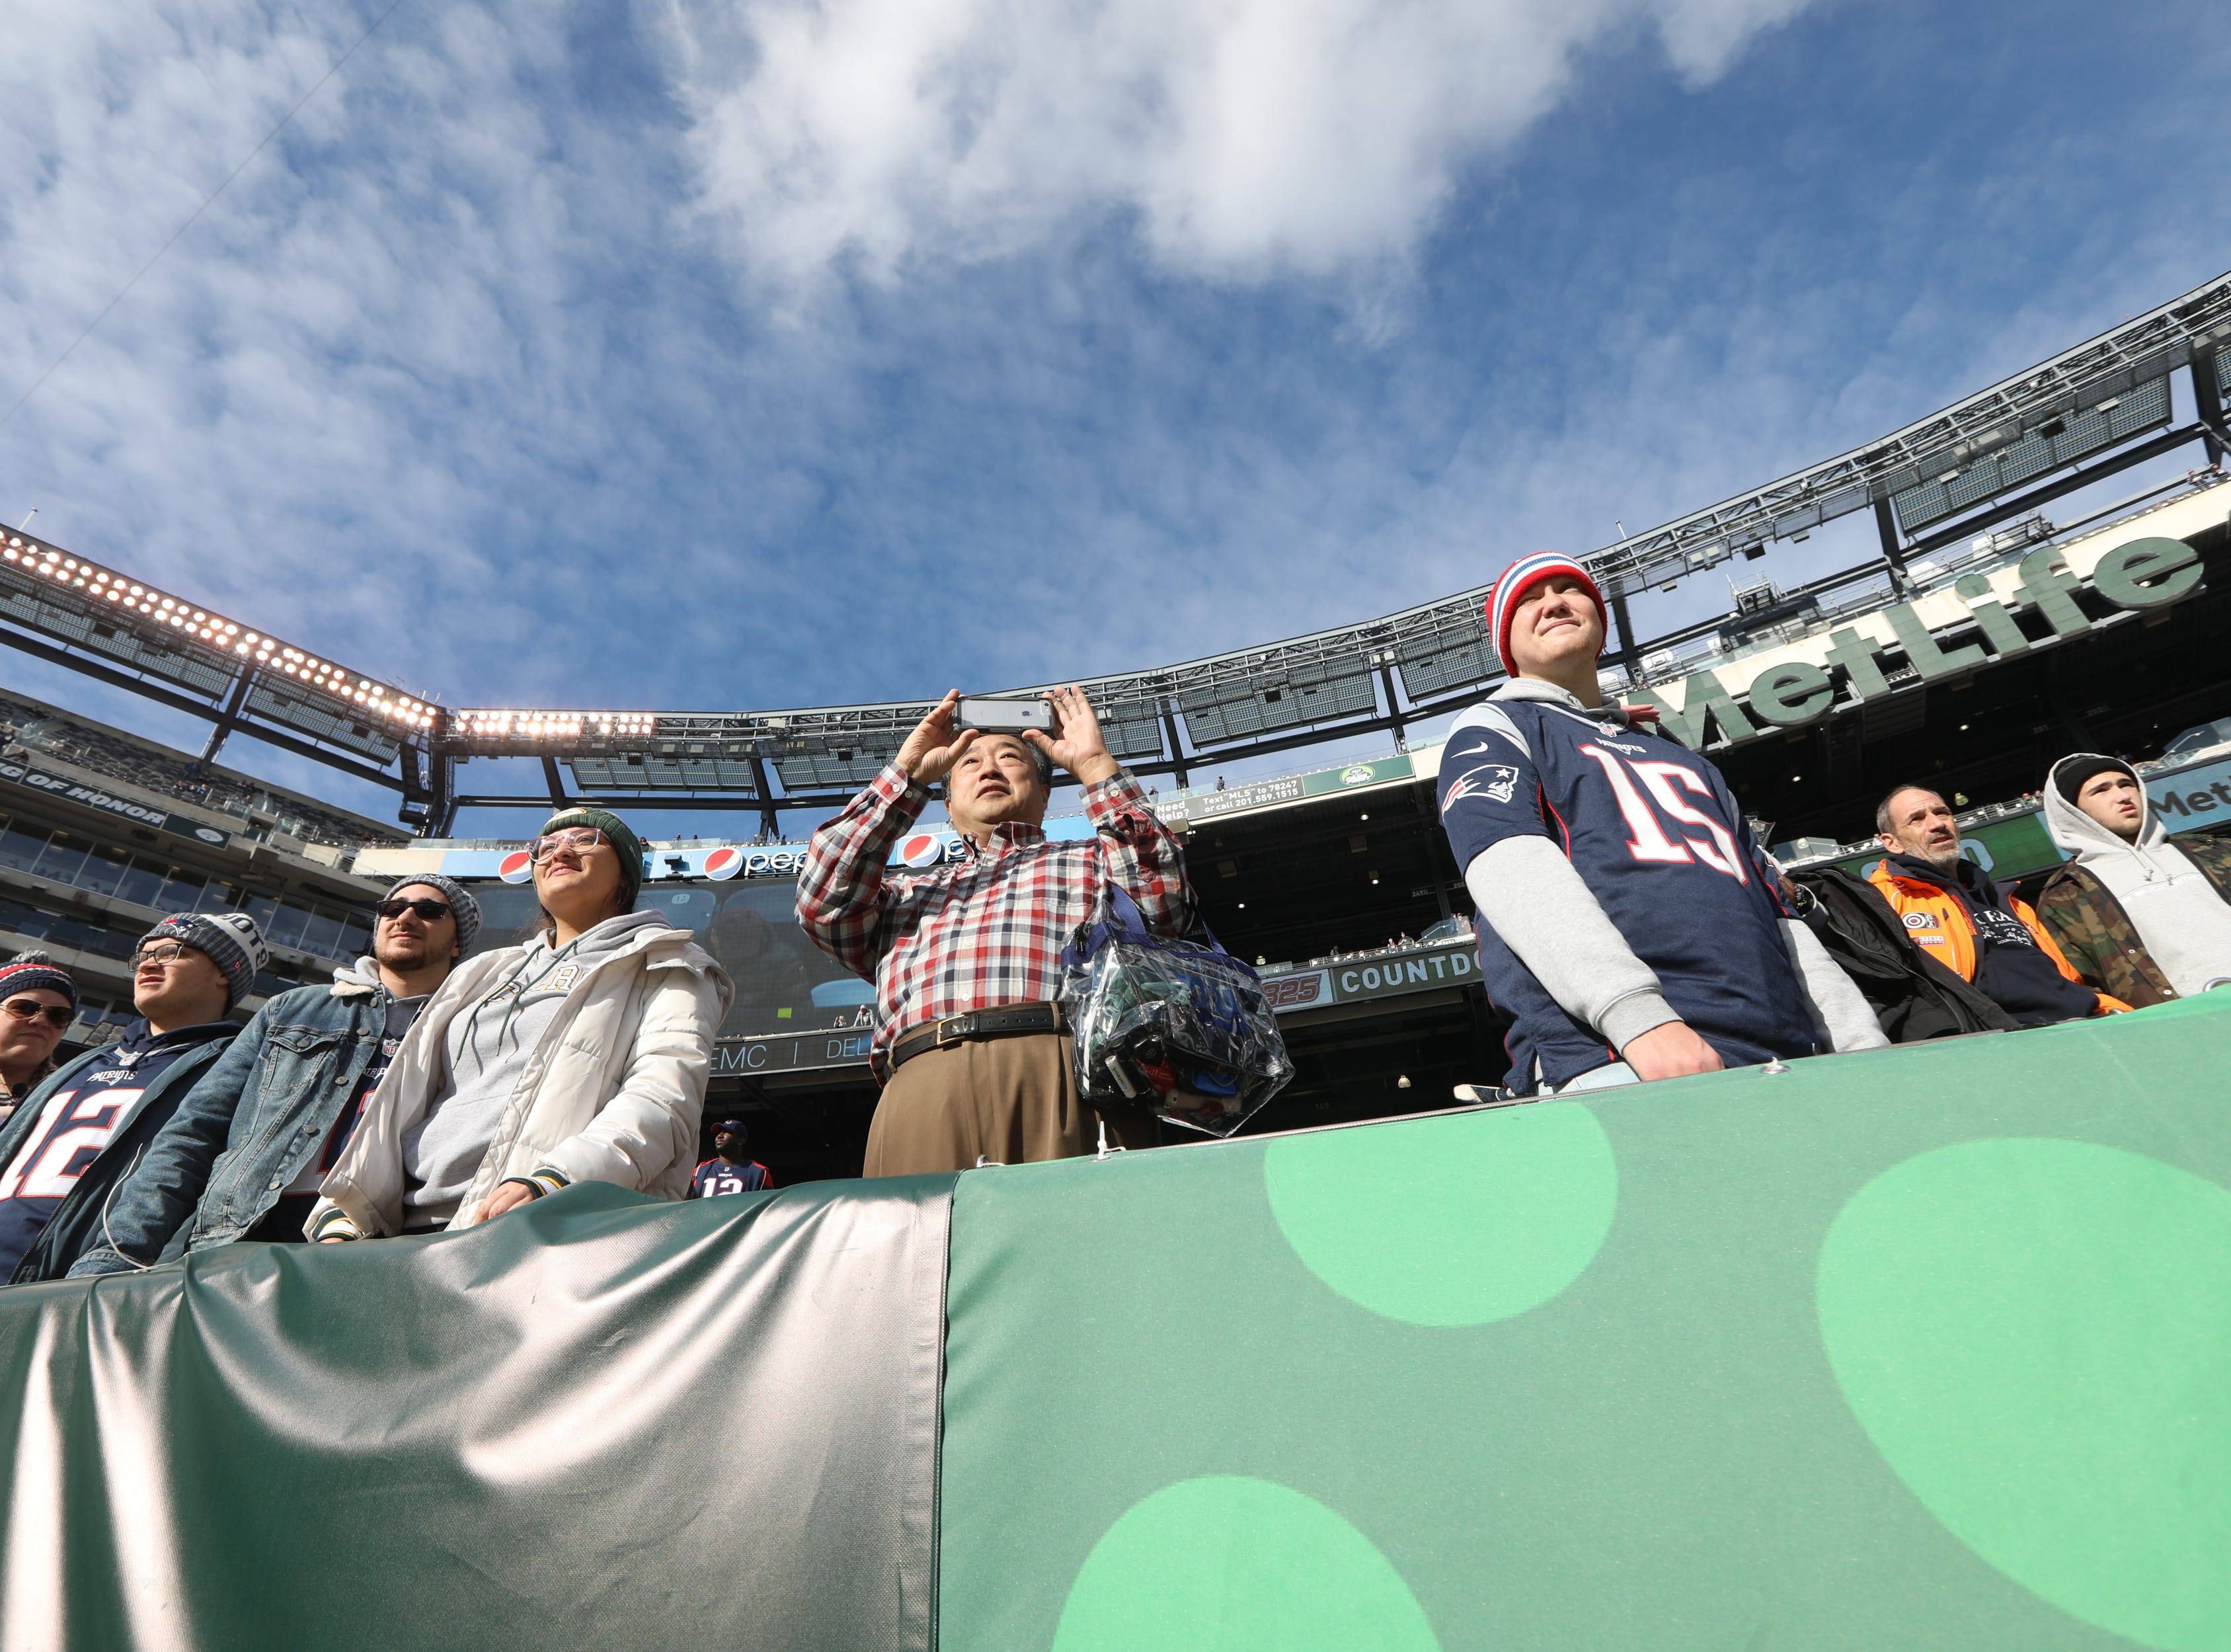 Fans watch warm-ups before the game at MetLife Stadium. November 25, 2018